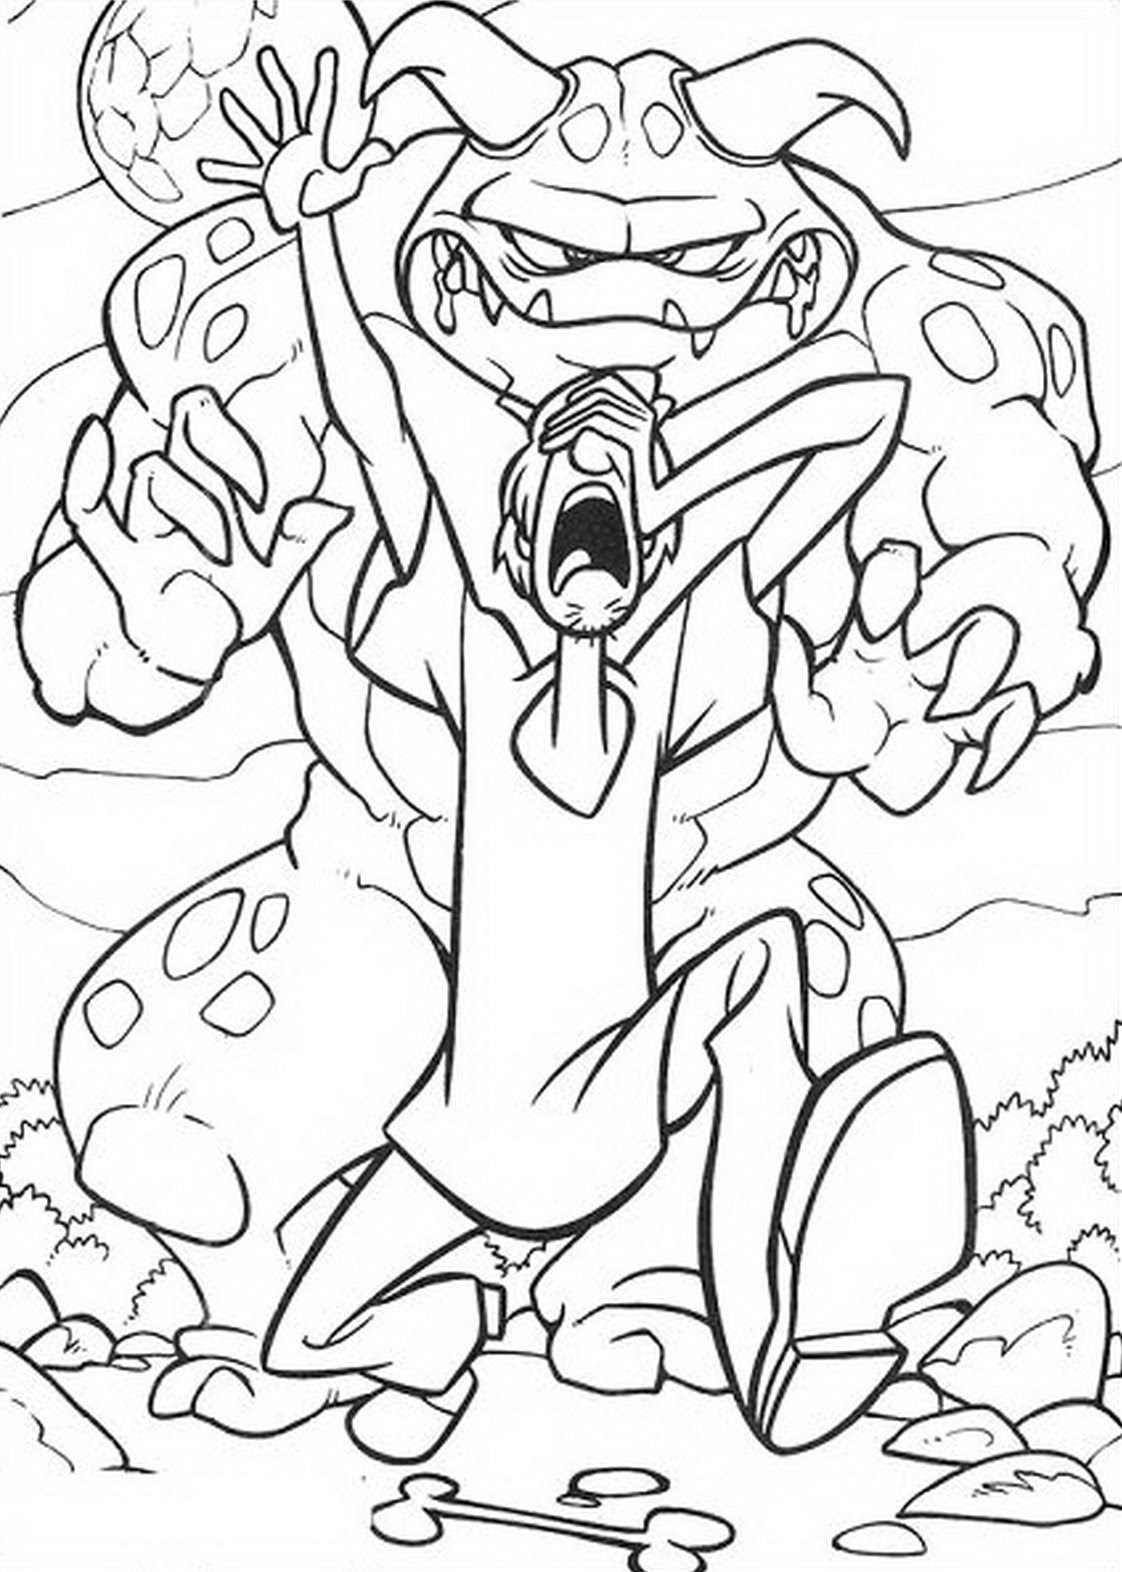 Scooby Doo Monster Coloring Pages at GetDrawings | Free ...